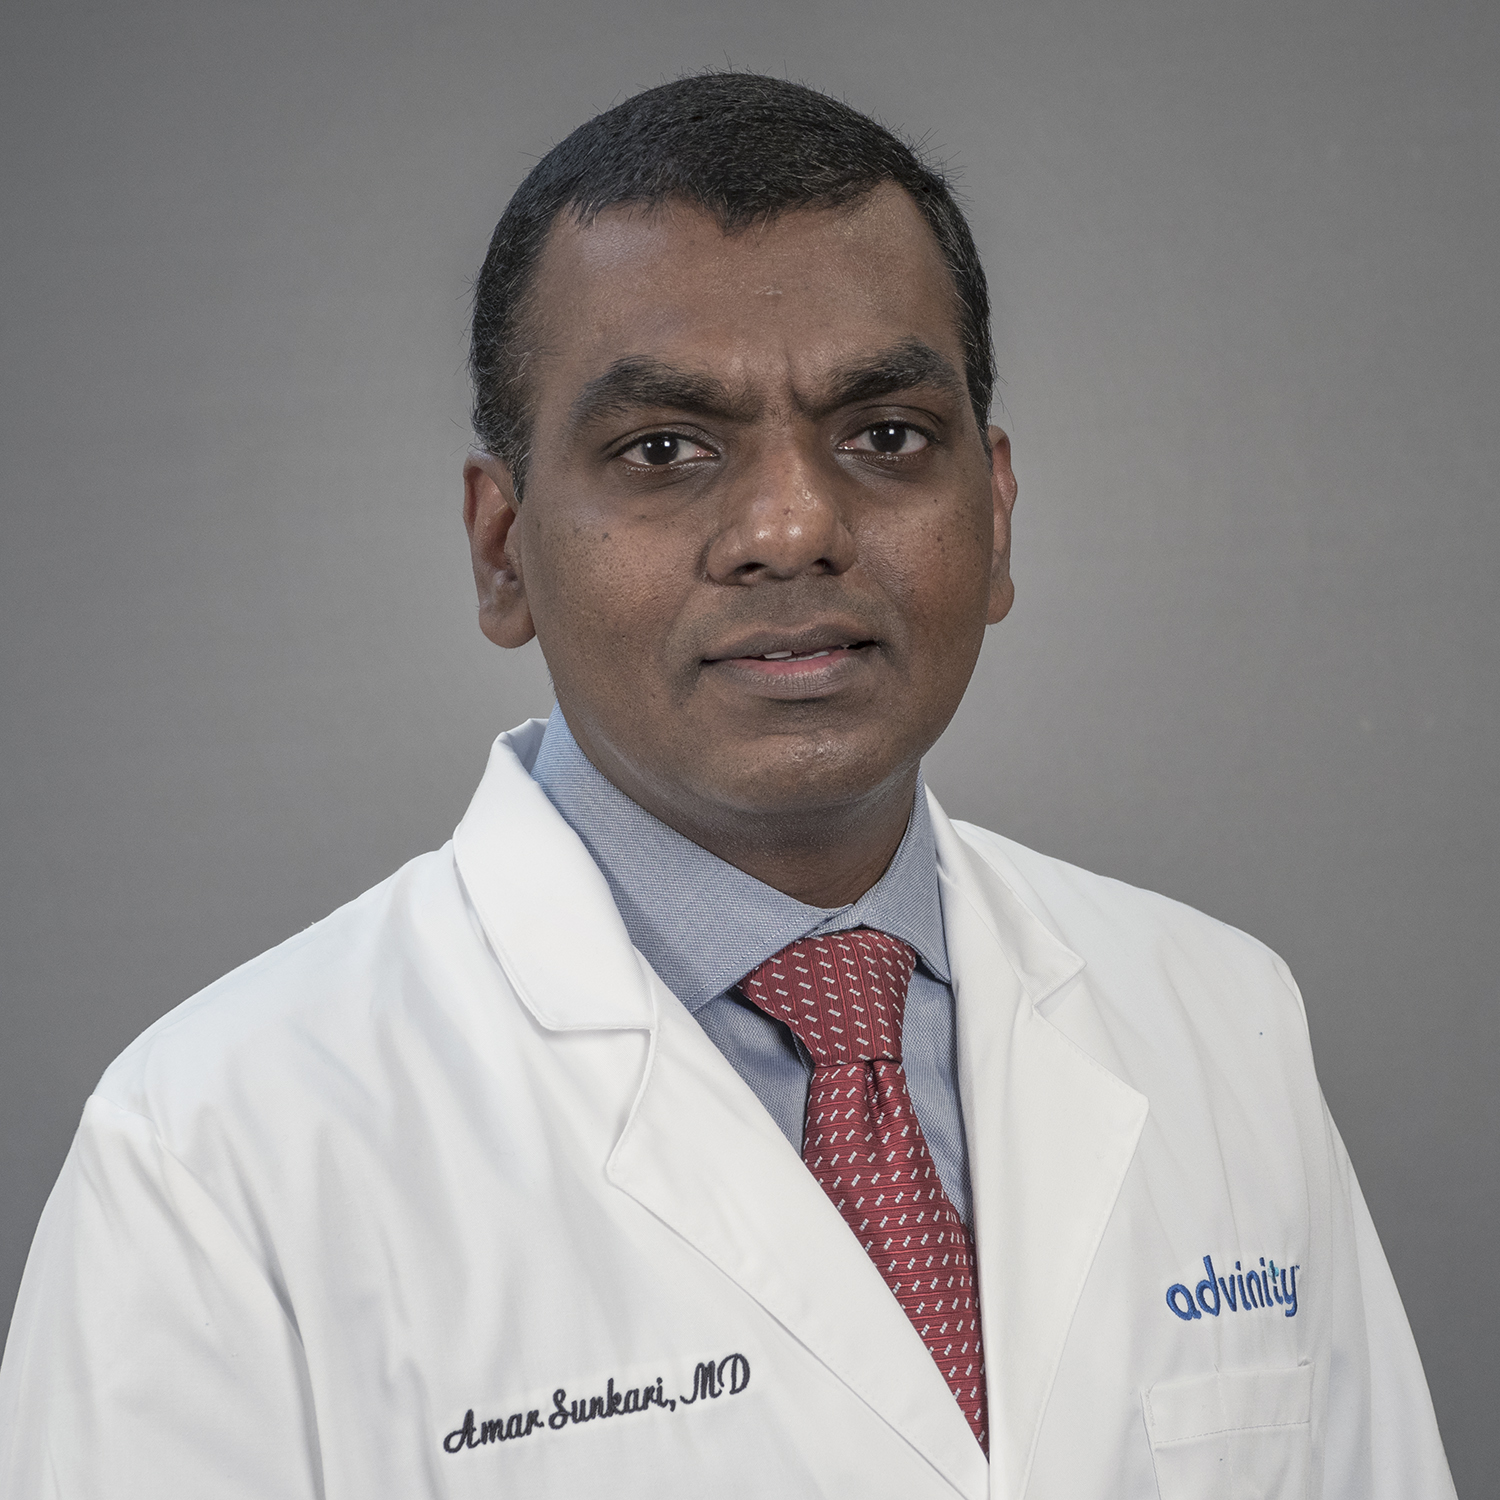 Amar Sunkari, MD Headshot